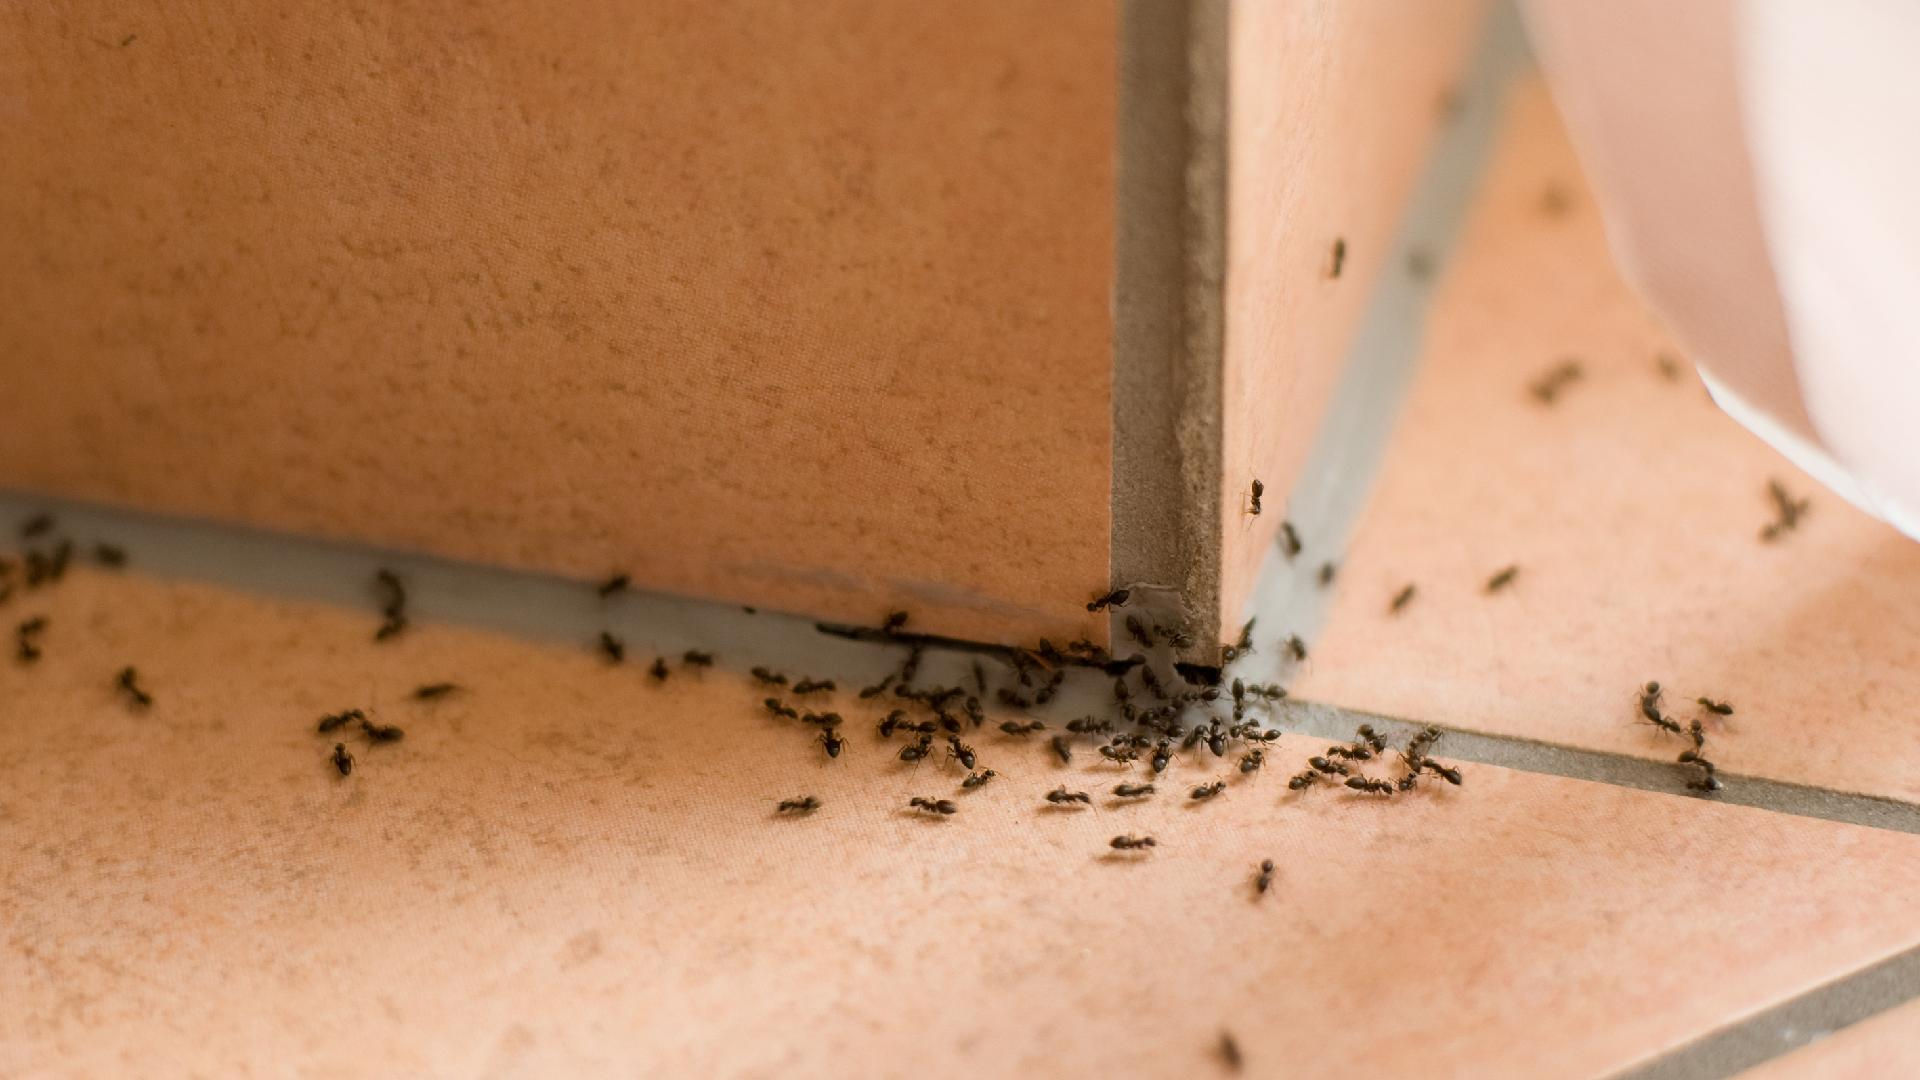 Hire Ant and Mouse Removal Expert in NYC